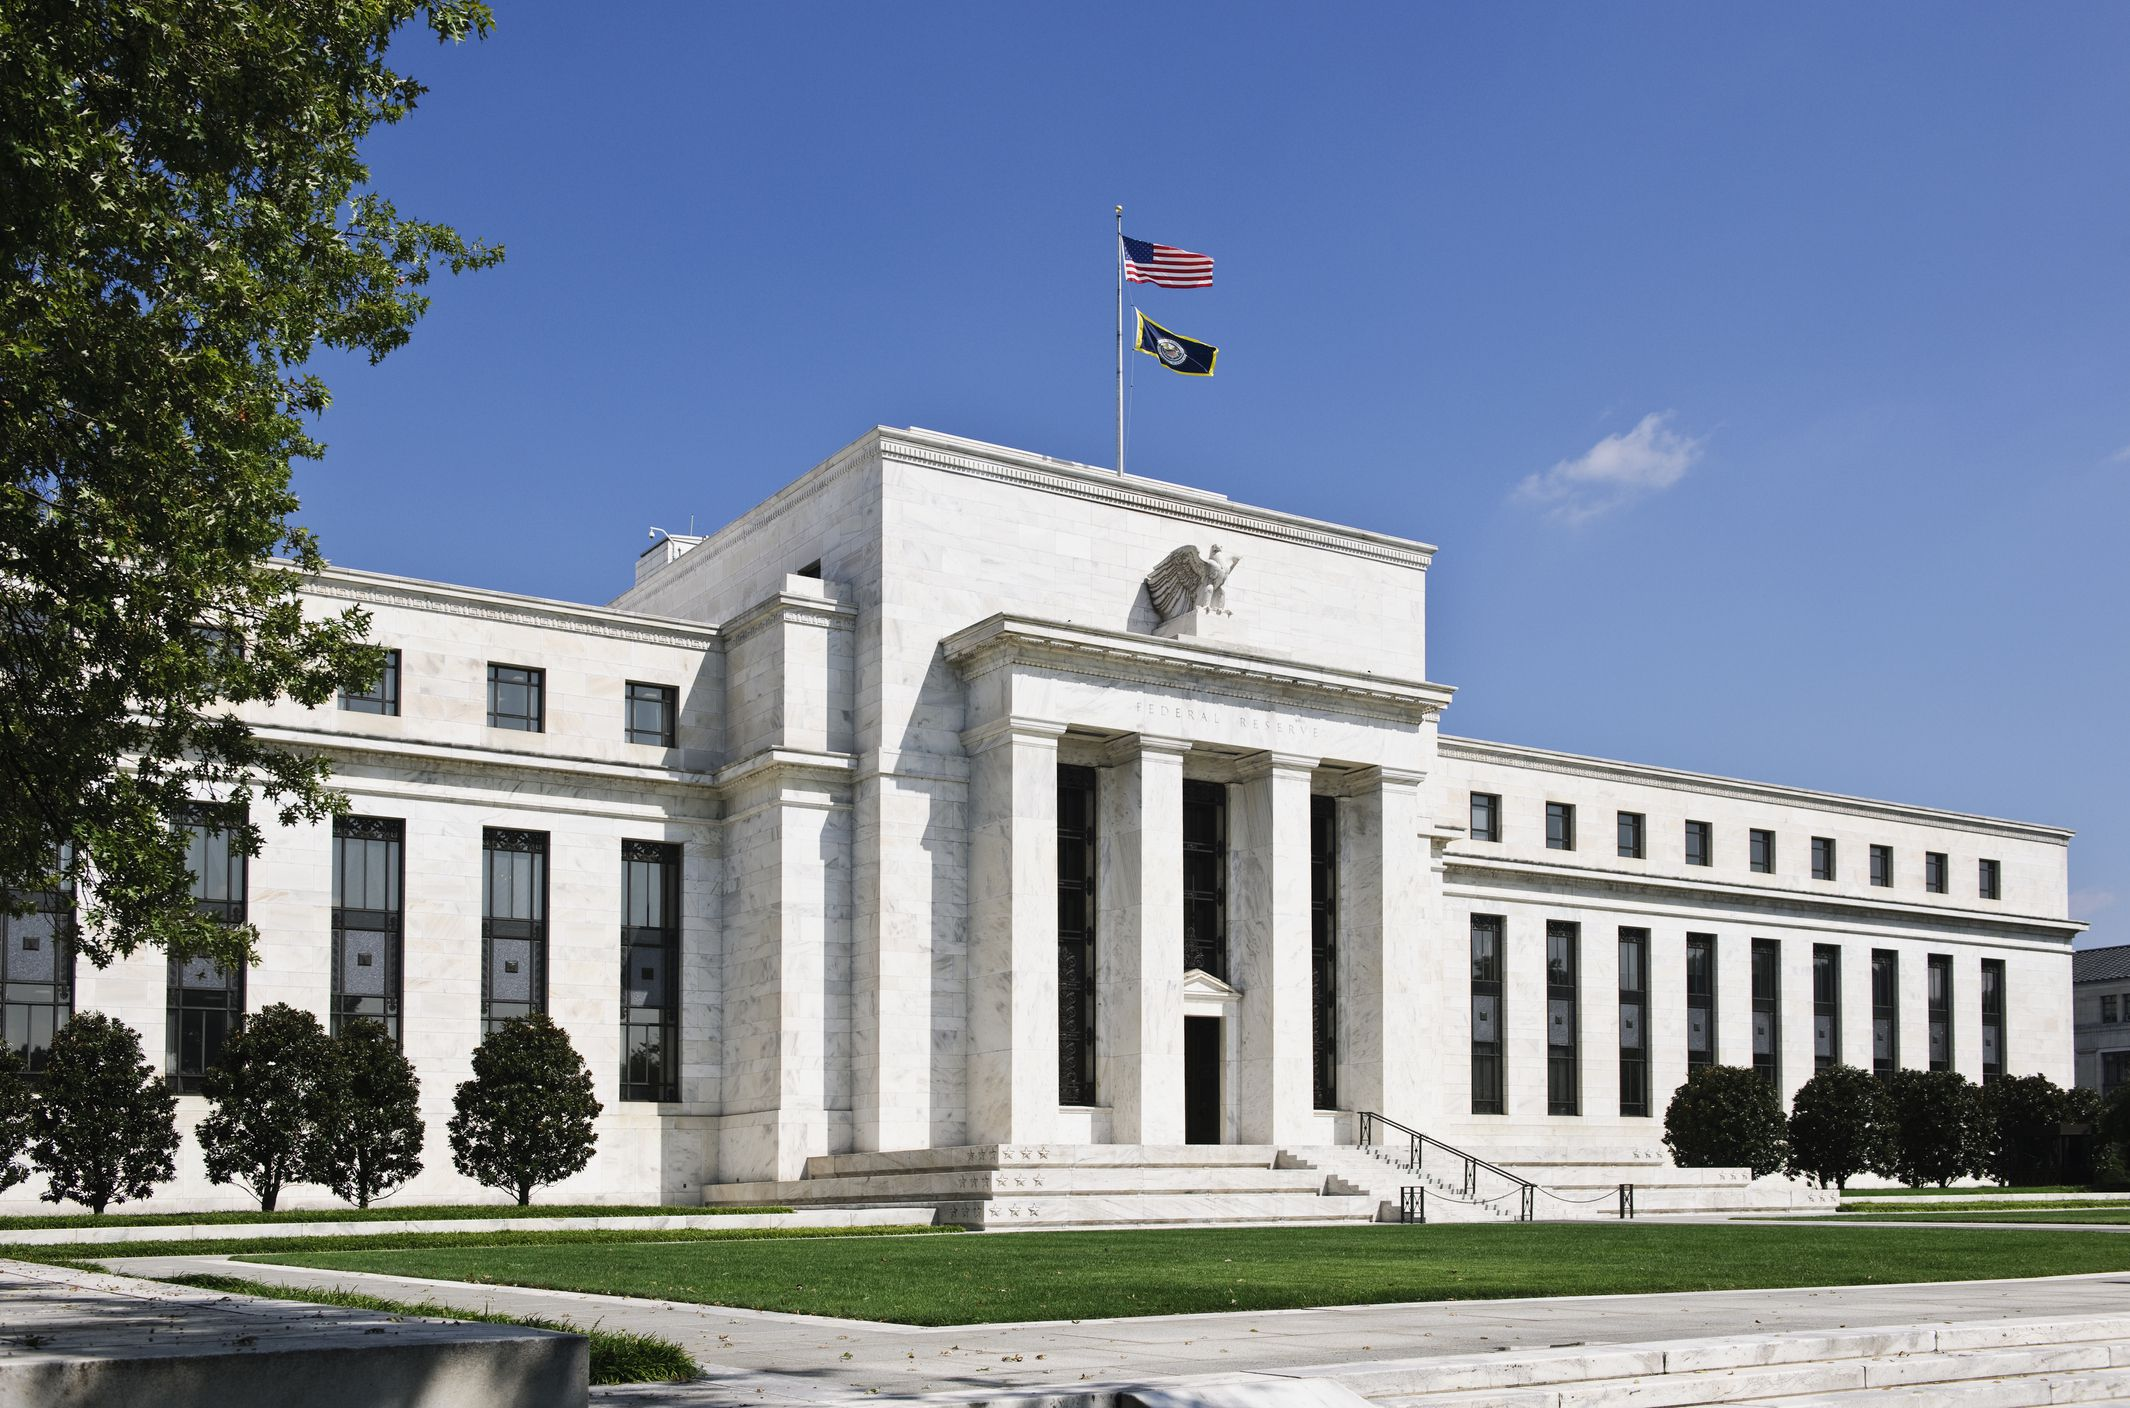 Current Federal Reserve Interest Rates and Why They Change